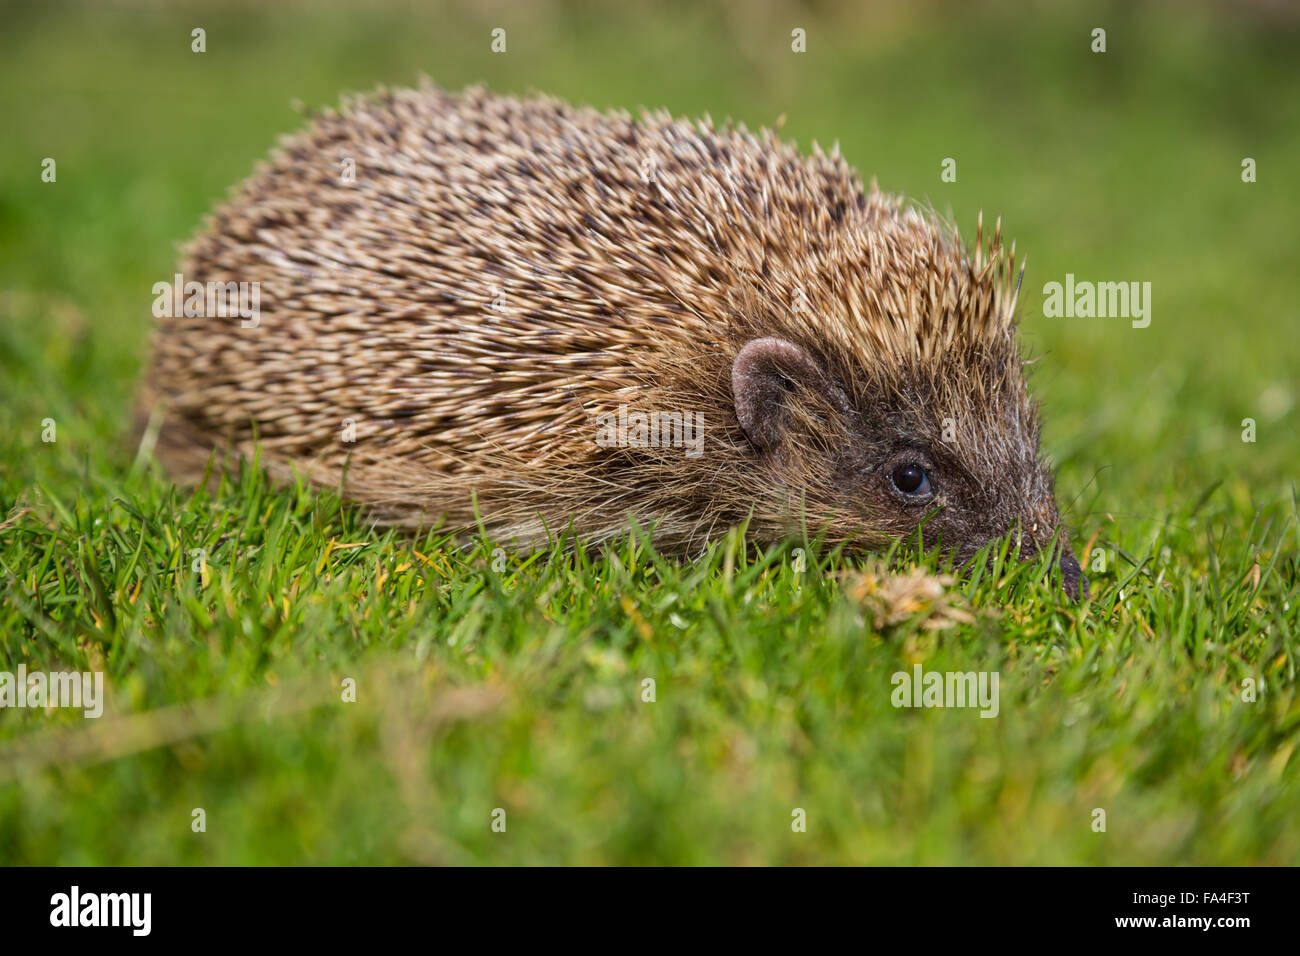 Wild Hedgehog - Stock Image